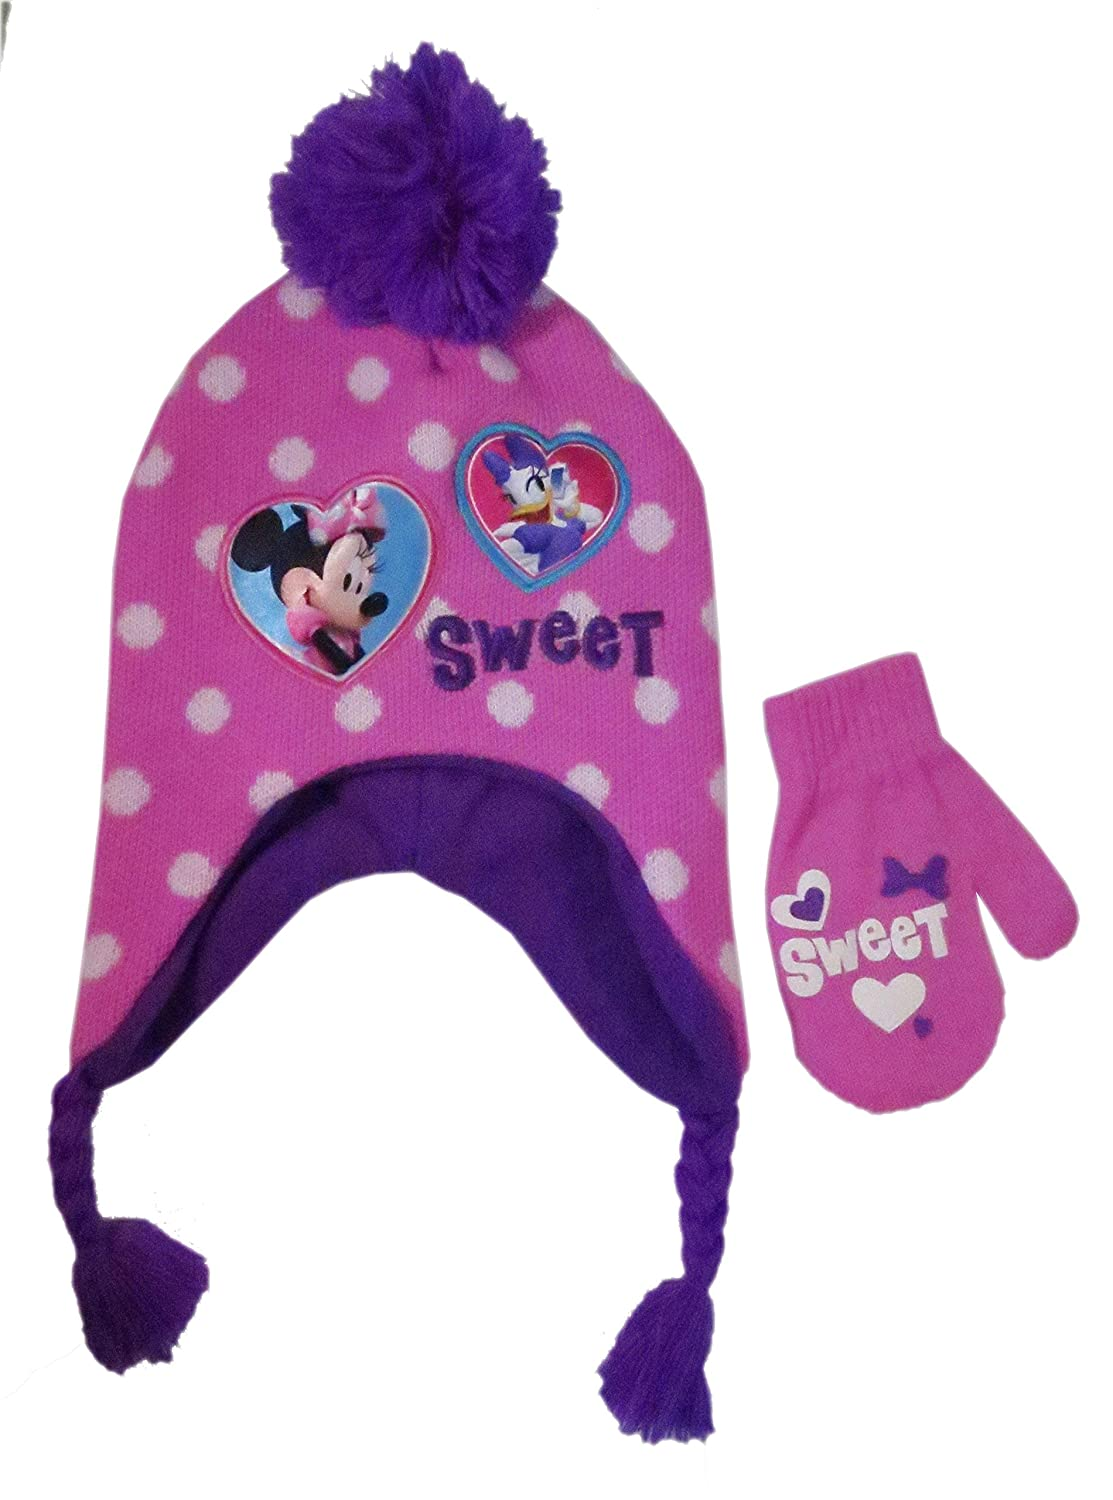 Disney Minnie Mouse Girls' Beanie & Mittens Set - pink, one size 00-VHC46Z-2R